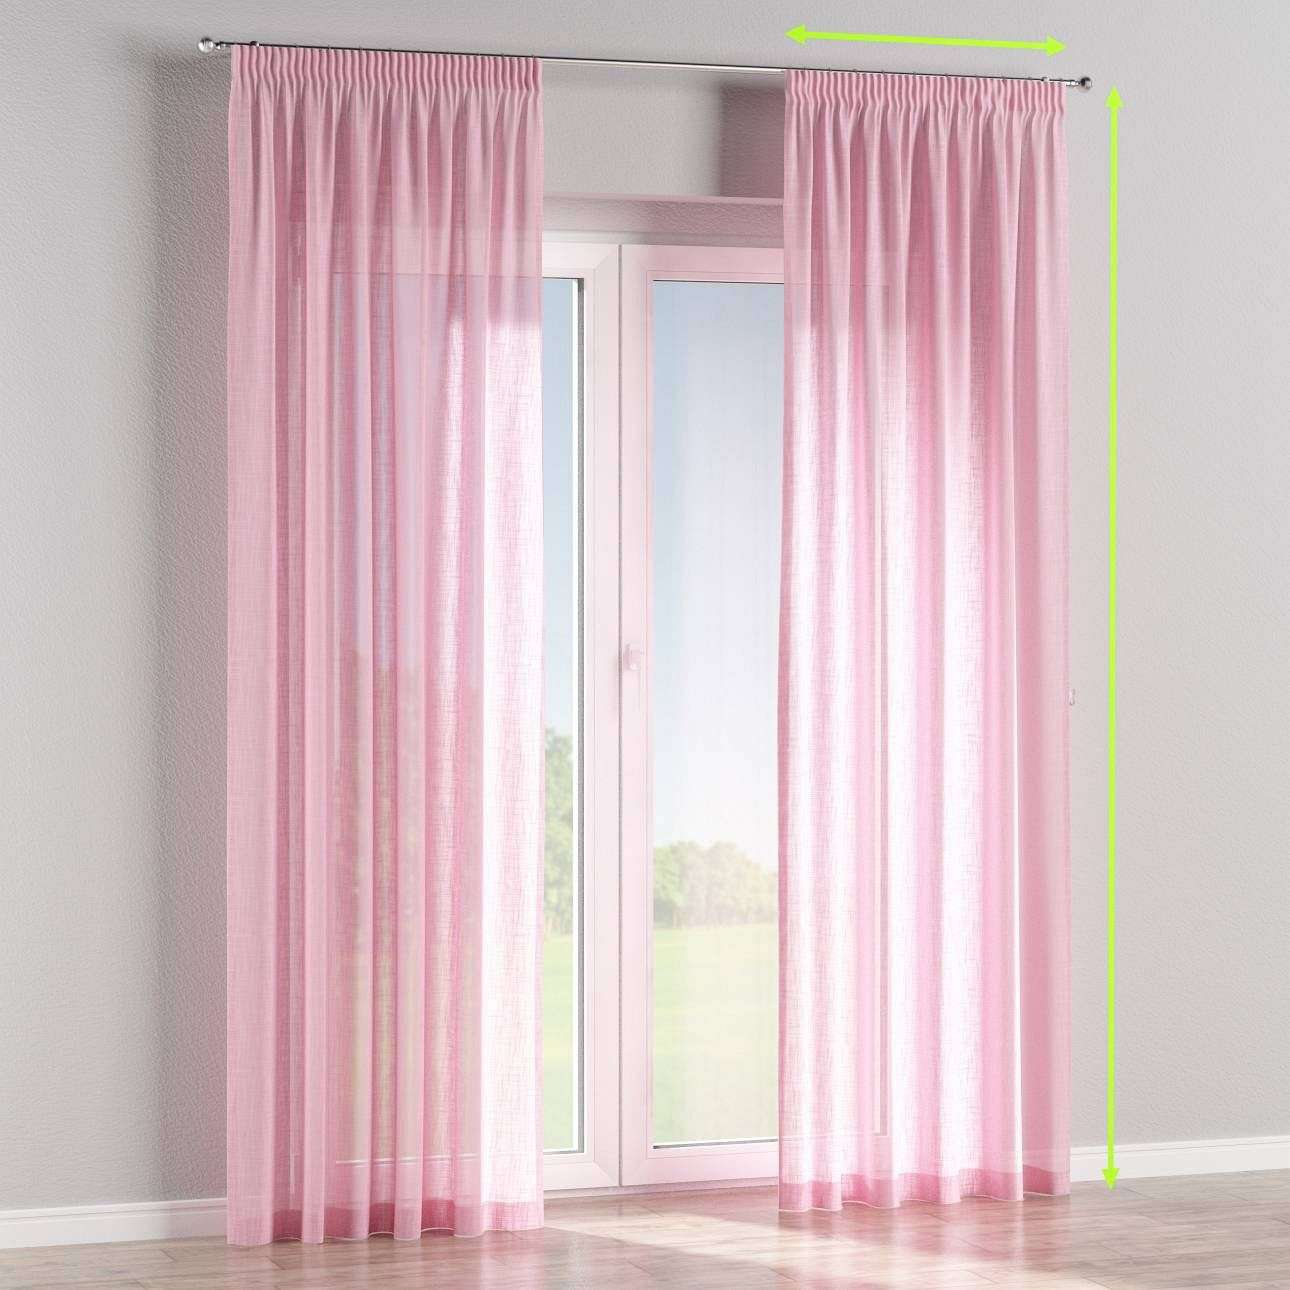 Pencil pleat curtains in collection Romantica, fabric: 128-03